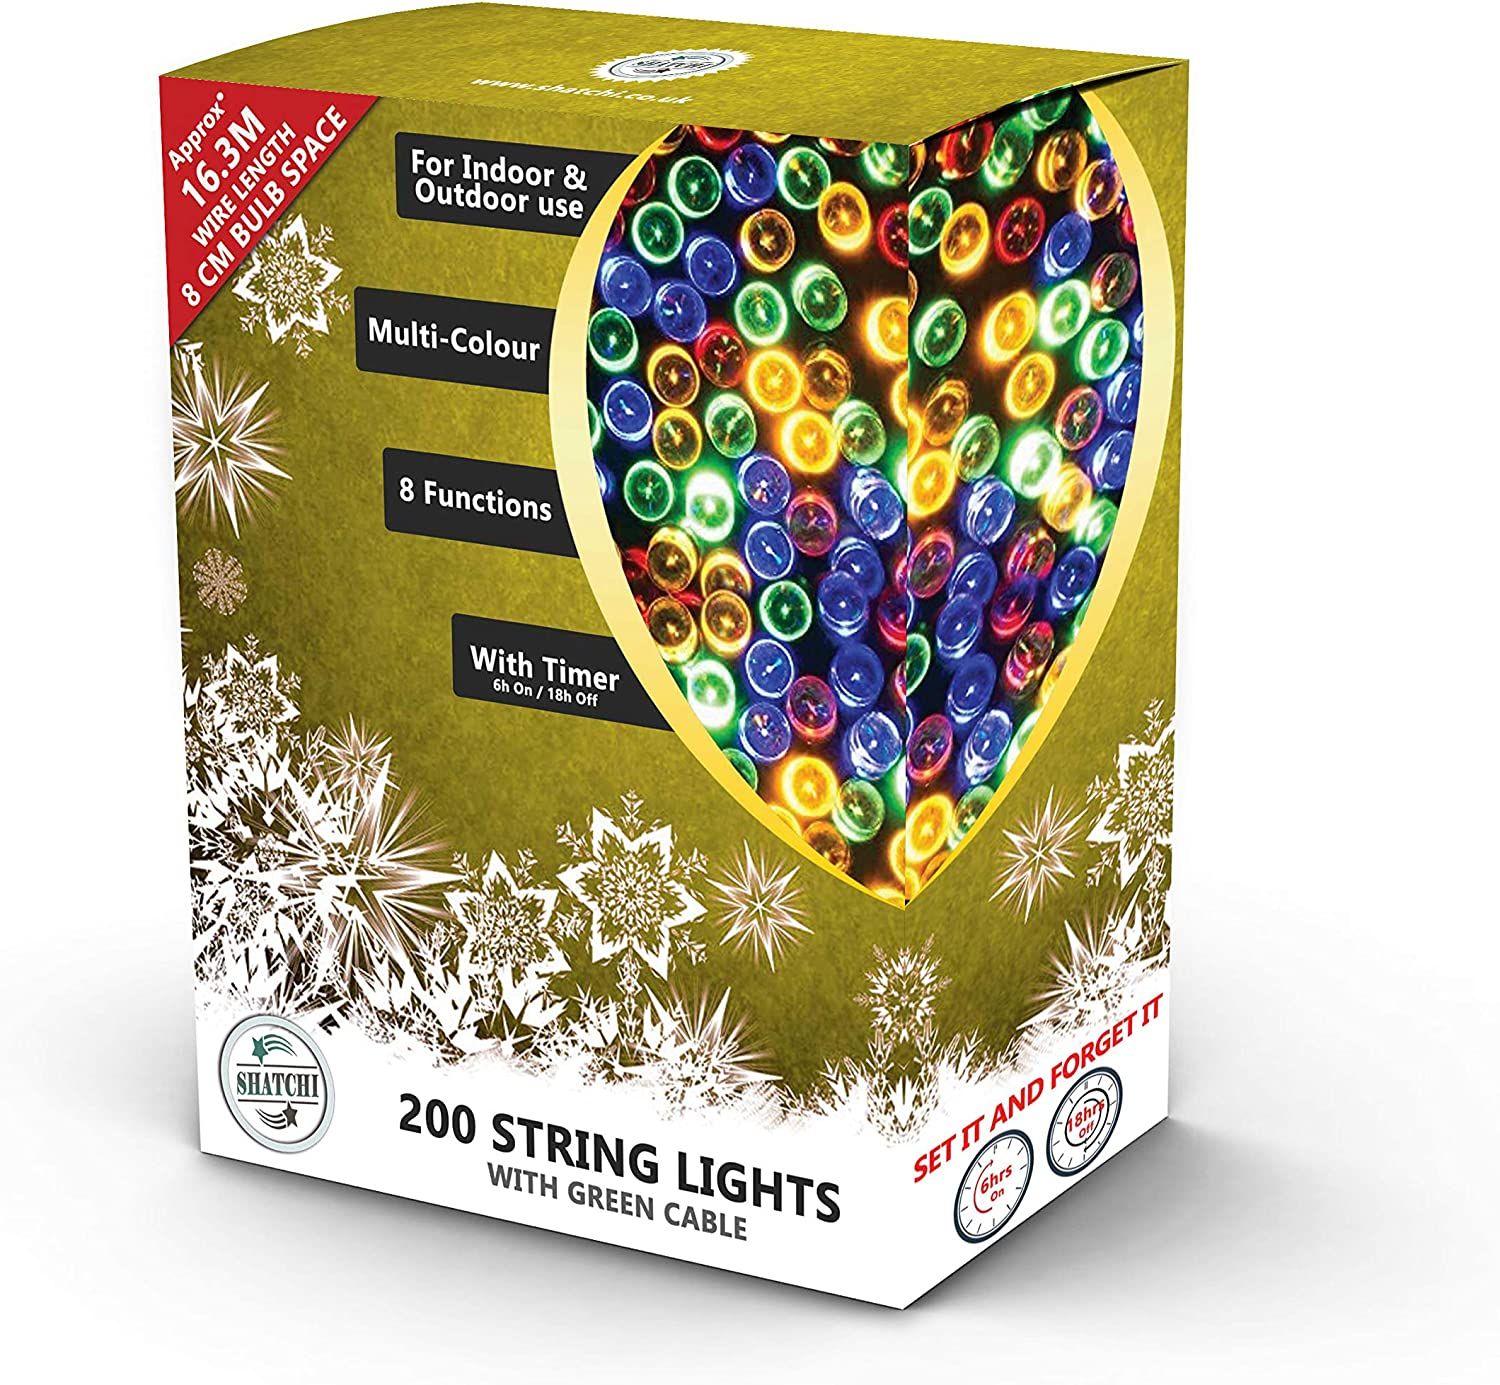 Cool White SHATCHI 200 LEDs 25m Bright Indoor//Outdoor String Christmas Tree//Home//Party//Wedding//Garden Decorations Green Cable 8 Modes Mains Powered Memory Auto Timer Fairy Lights